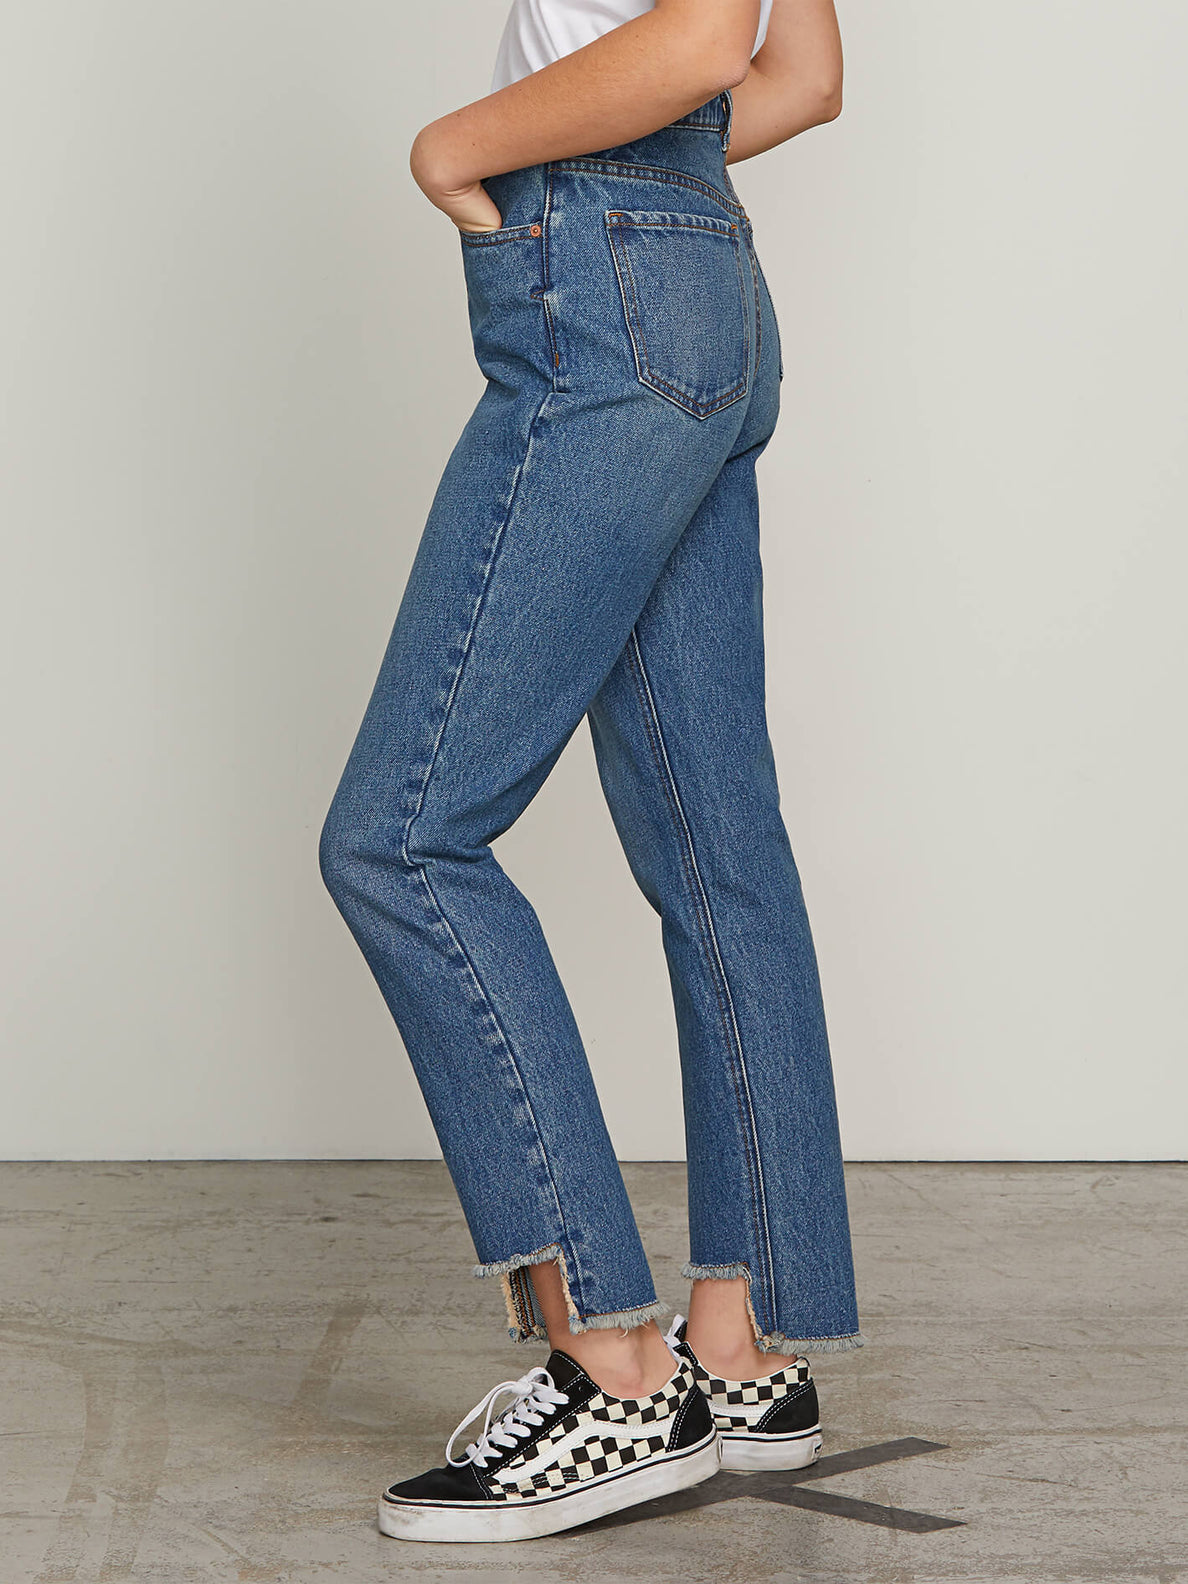 Super Stoned Skinny Jeans In Vintage Blue, Alternate View